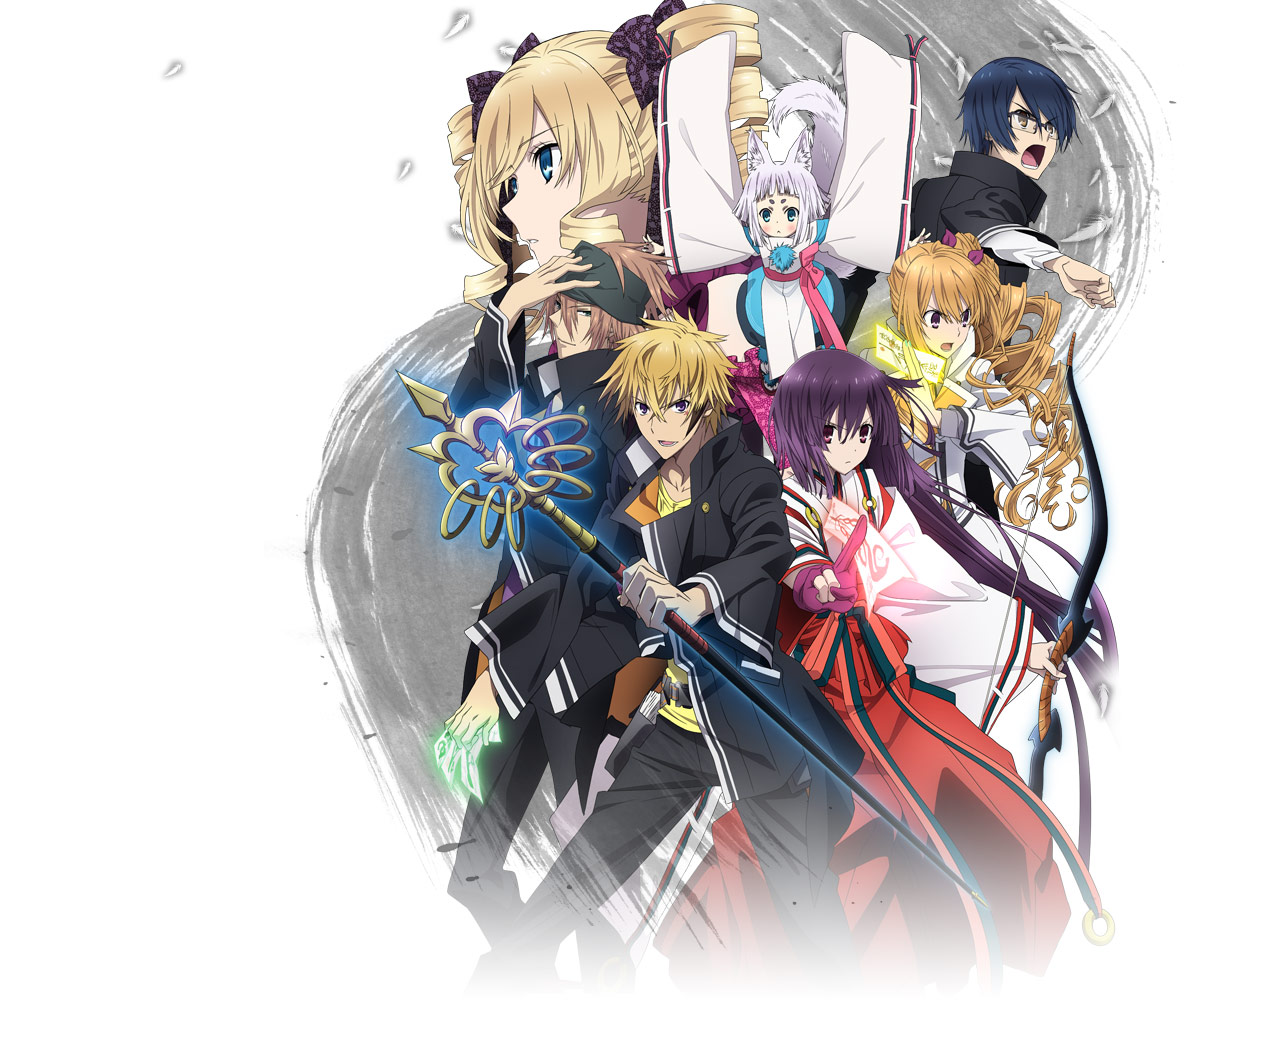 Tokyo Ravens Images HD Wallpaper And Background Photos